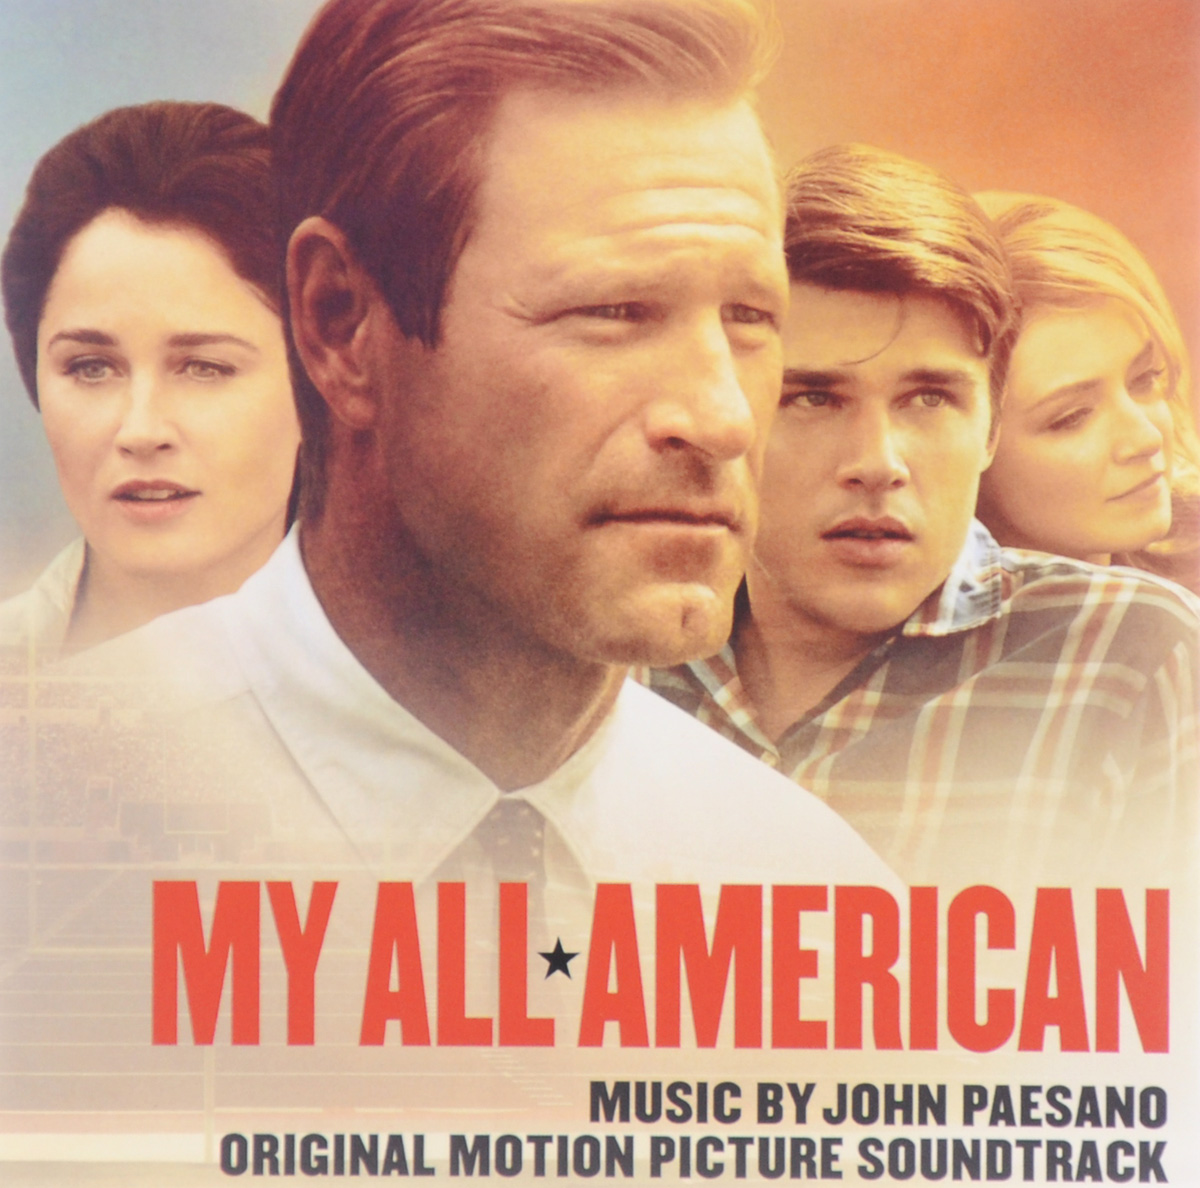 My All American. Original Motion Picture Soundtrask. Music By John Paesano boya by wm5 by wm6 camera wireless lavalier microphone recorder system for canon 6d 600d 5d2 5d3 nikon d800 sony dv camcorder